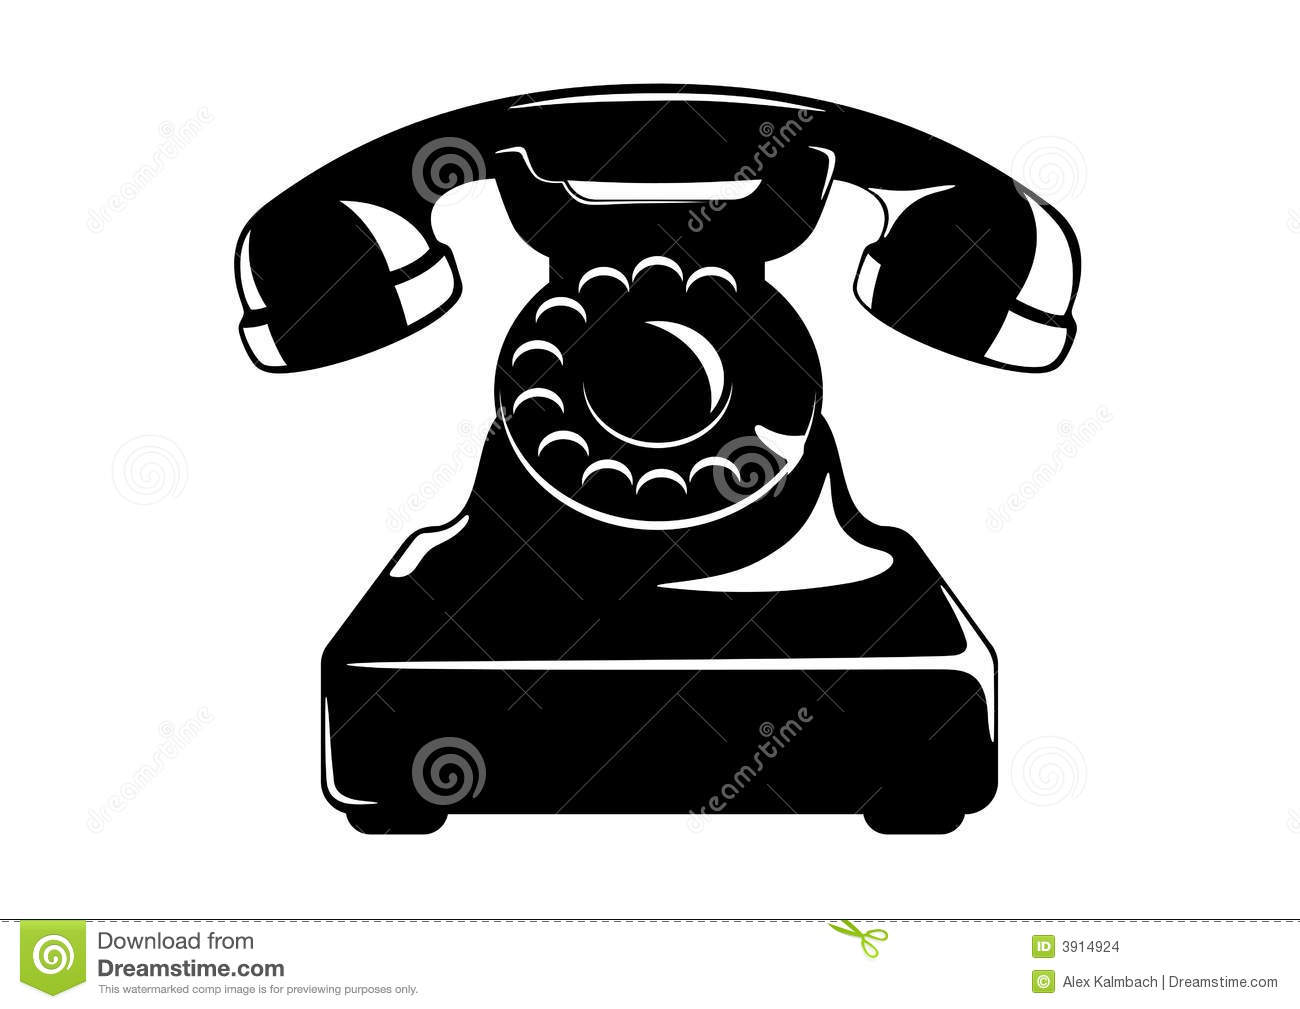 vintage telephone clipart - photo #33